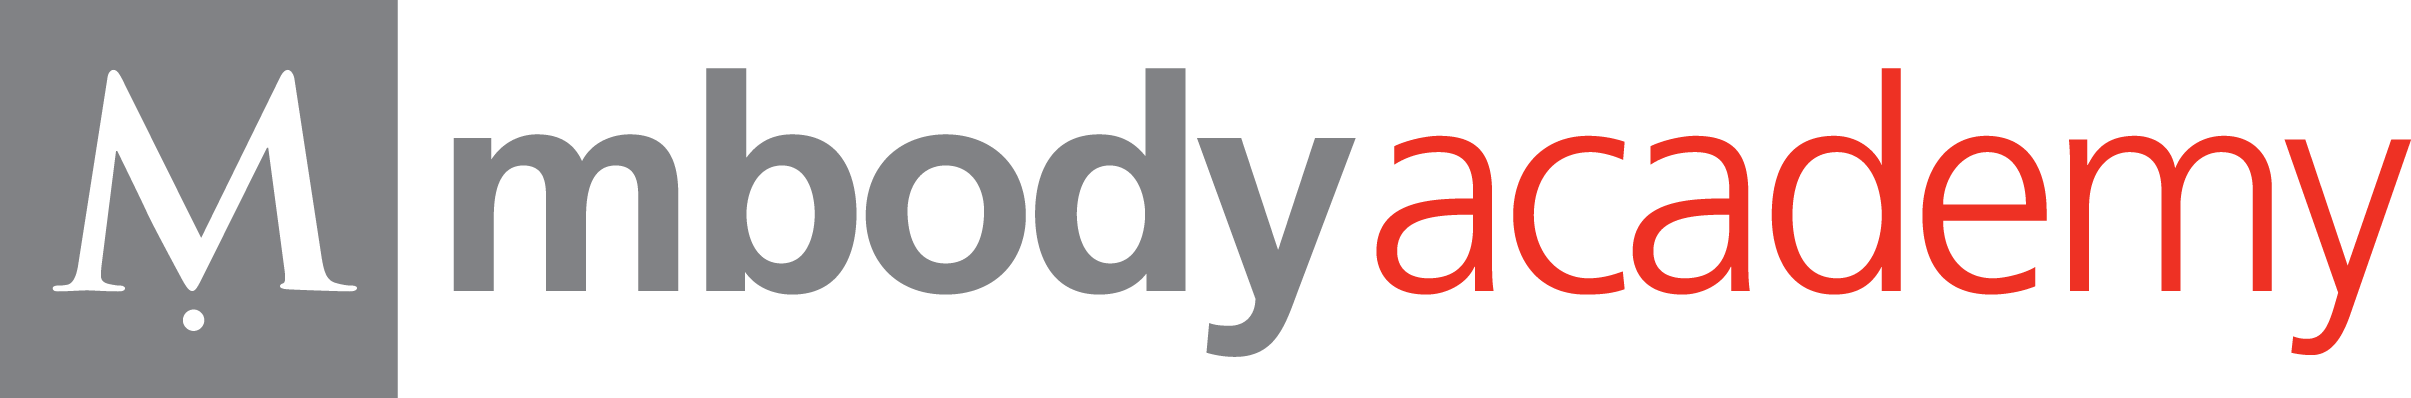 MBody Yoga | Jacksonville's Best Yoga Studios & Teacher Training